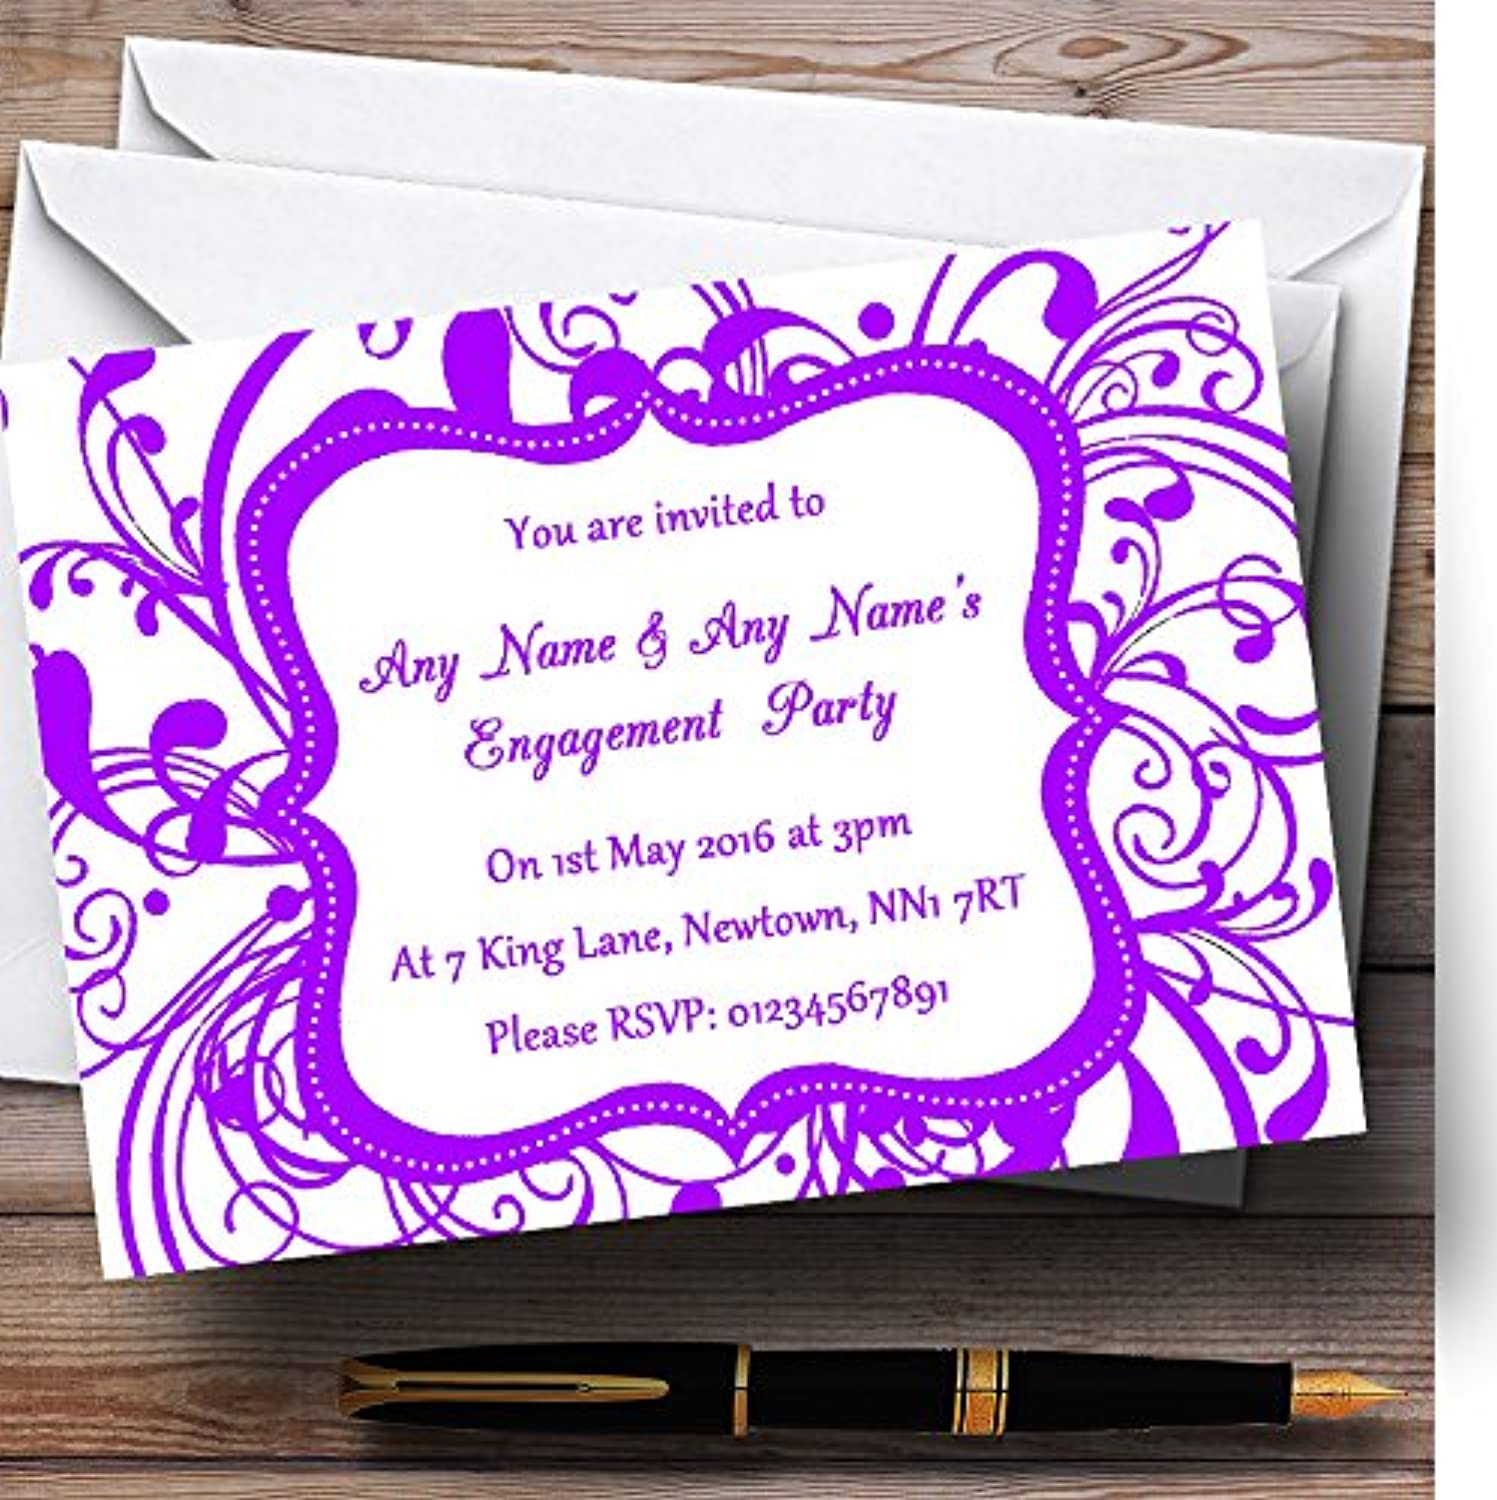 White & Purple Swirl Deco Personalised Engagement Party Invitations   Invites & Envelopes